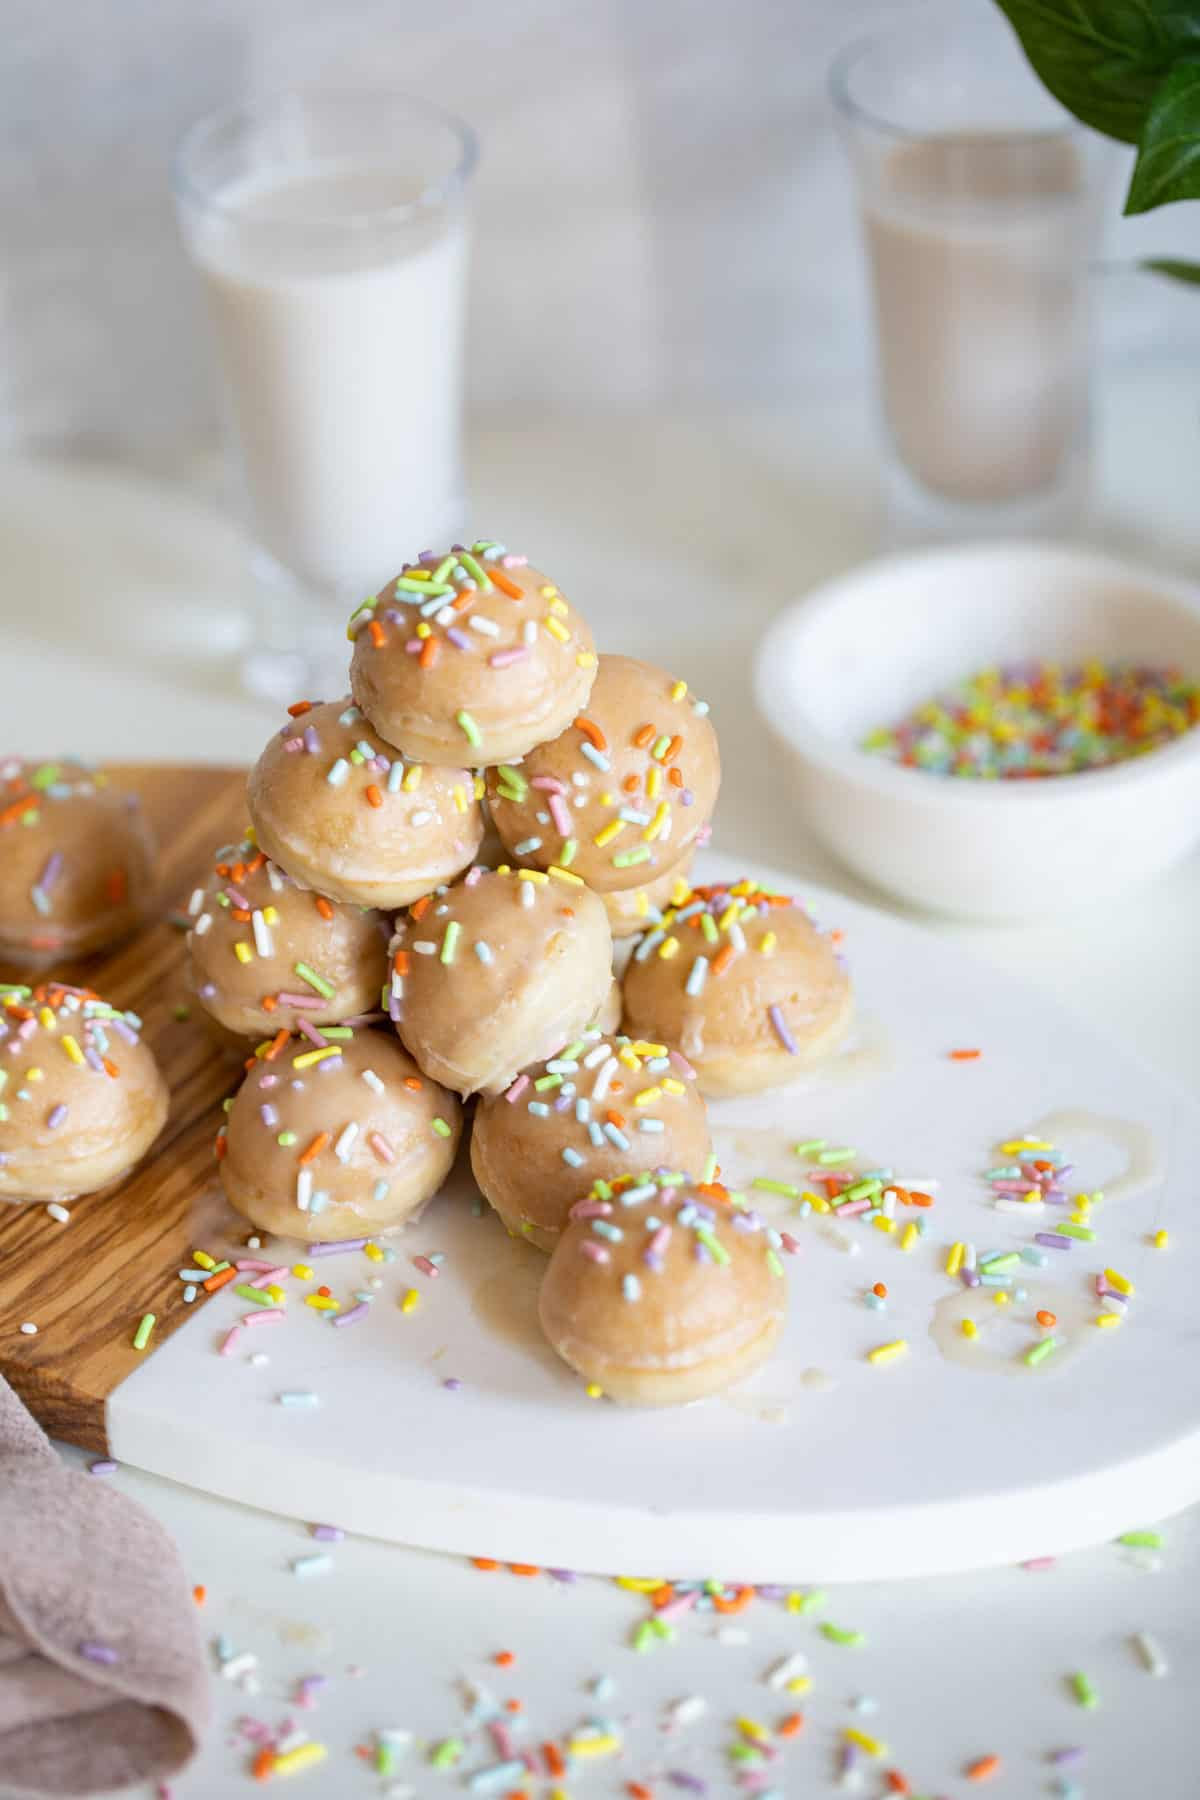 stack of vegan donut holes with rainbow sprinkles